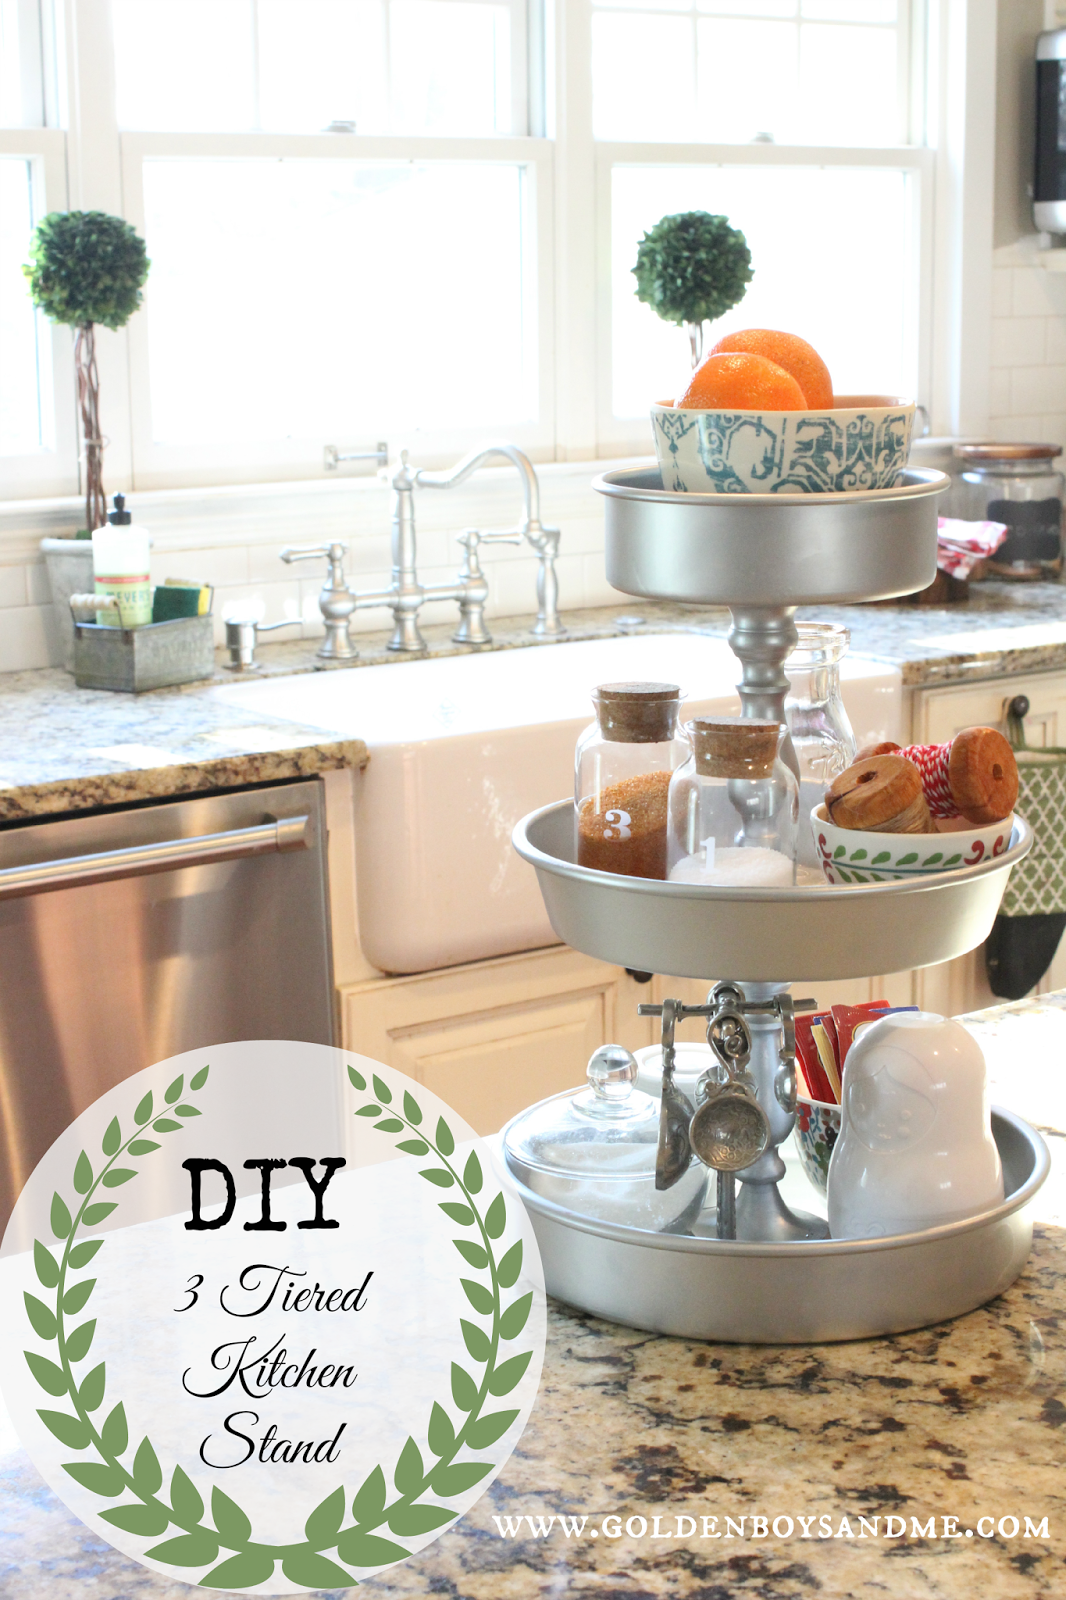 Diy 3 Tiered Kitchen Stand